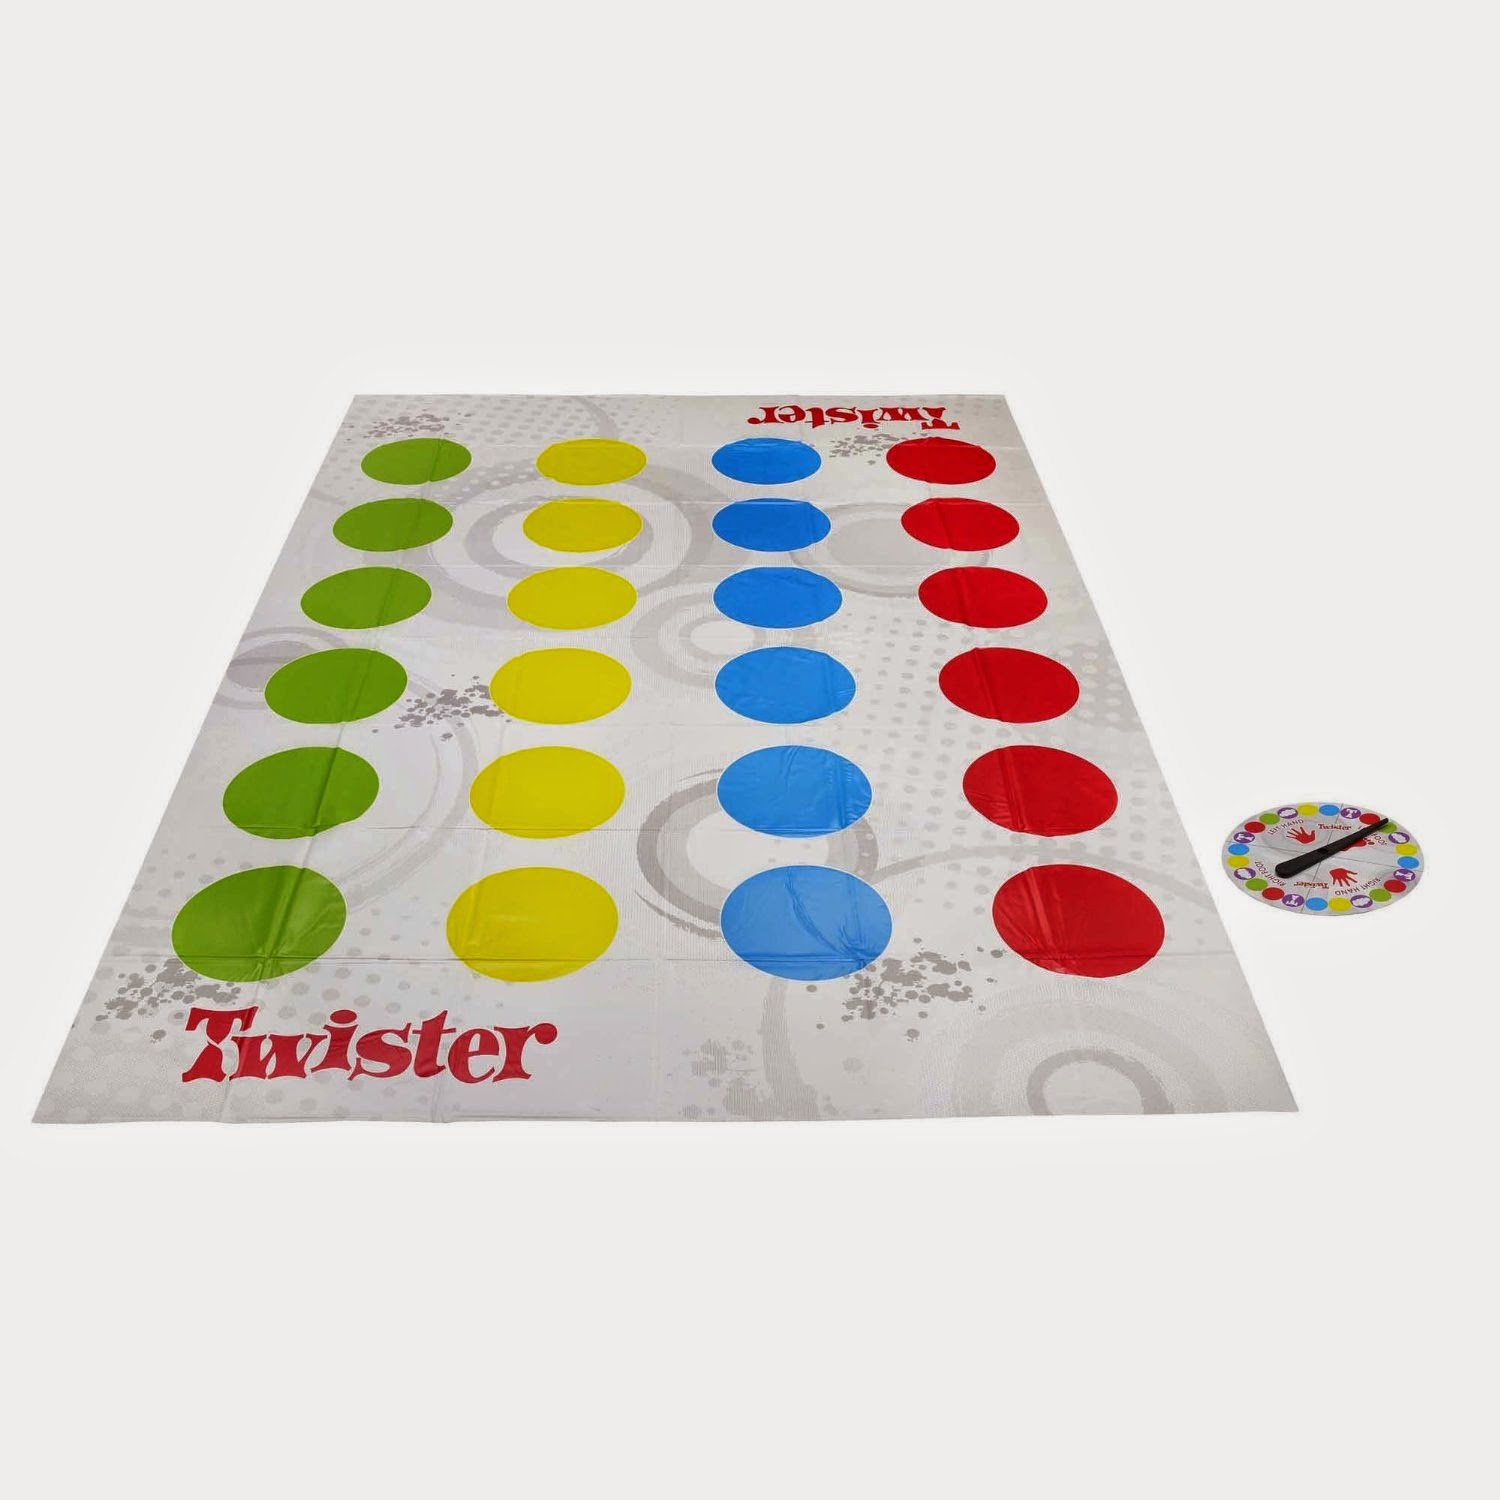 Play Twister for Step 3 of the Brownie Making Games Badge